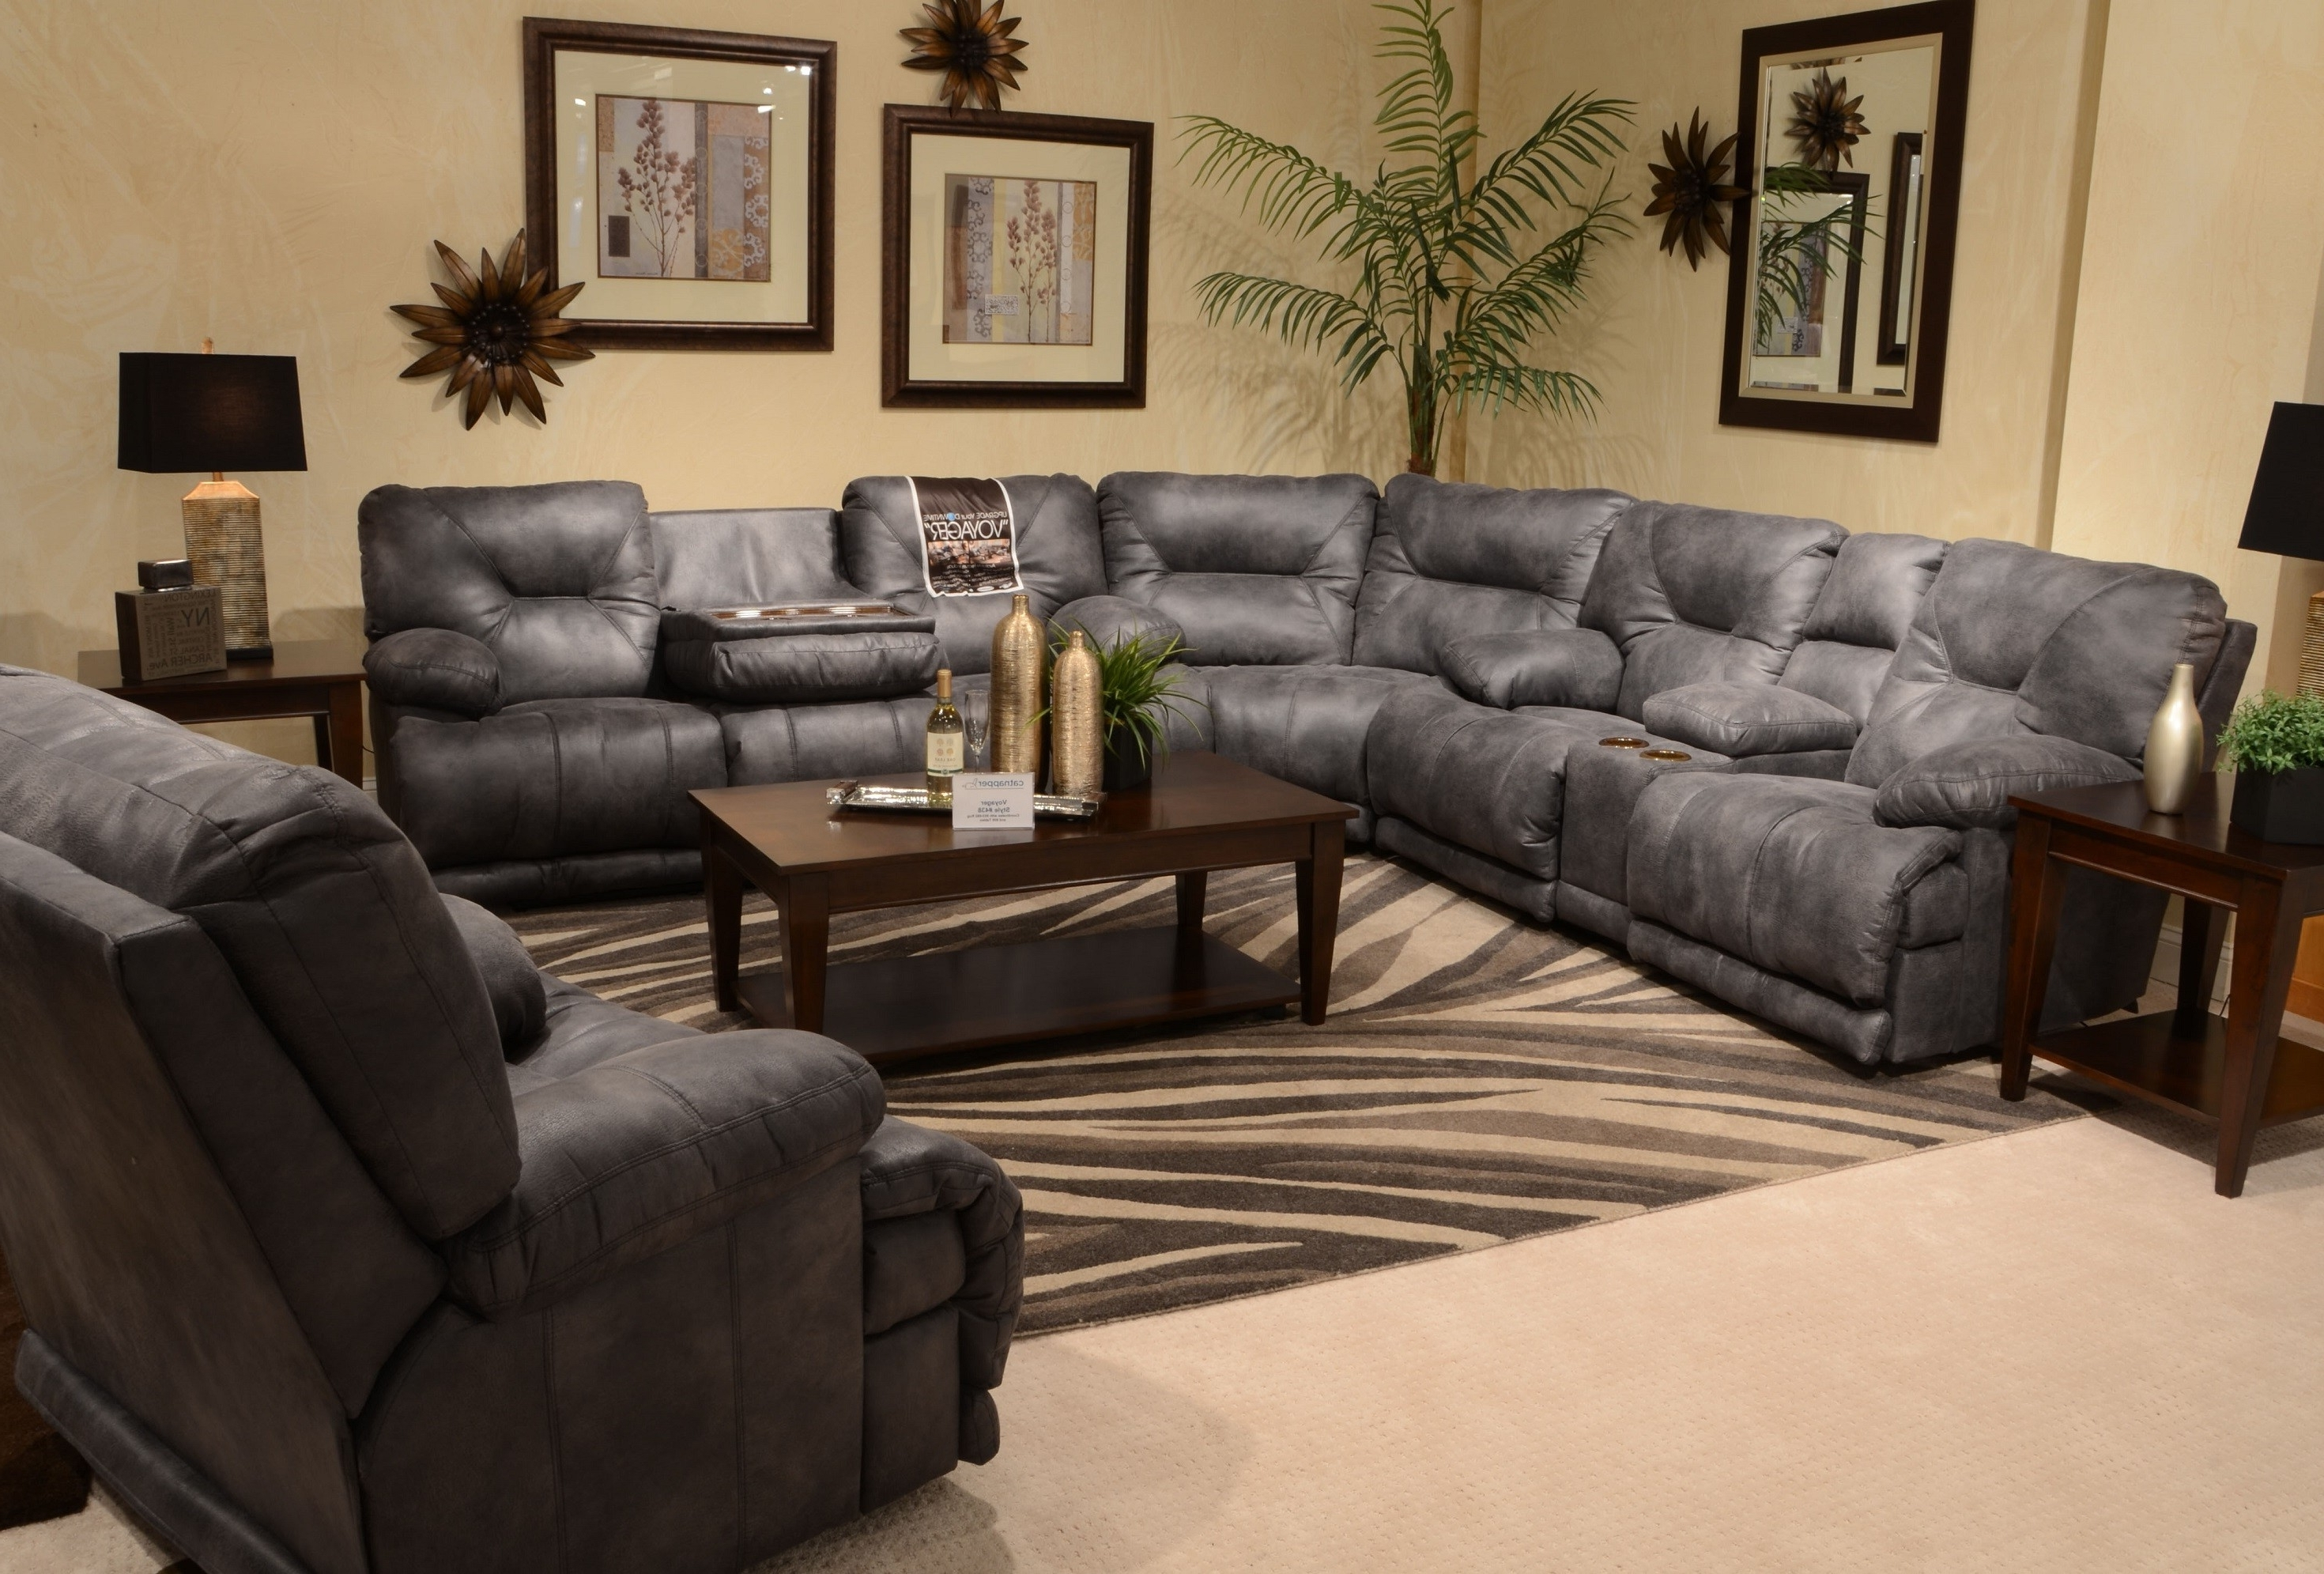 Grey Velvet Sectional Sofa – Cleanupflorida For Popular Ottawa Sectional Sofas (View 9 of 15)